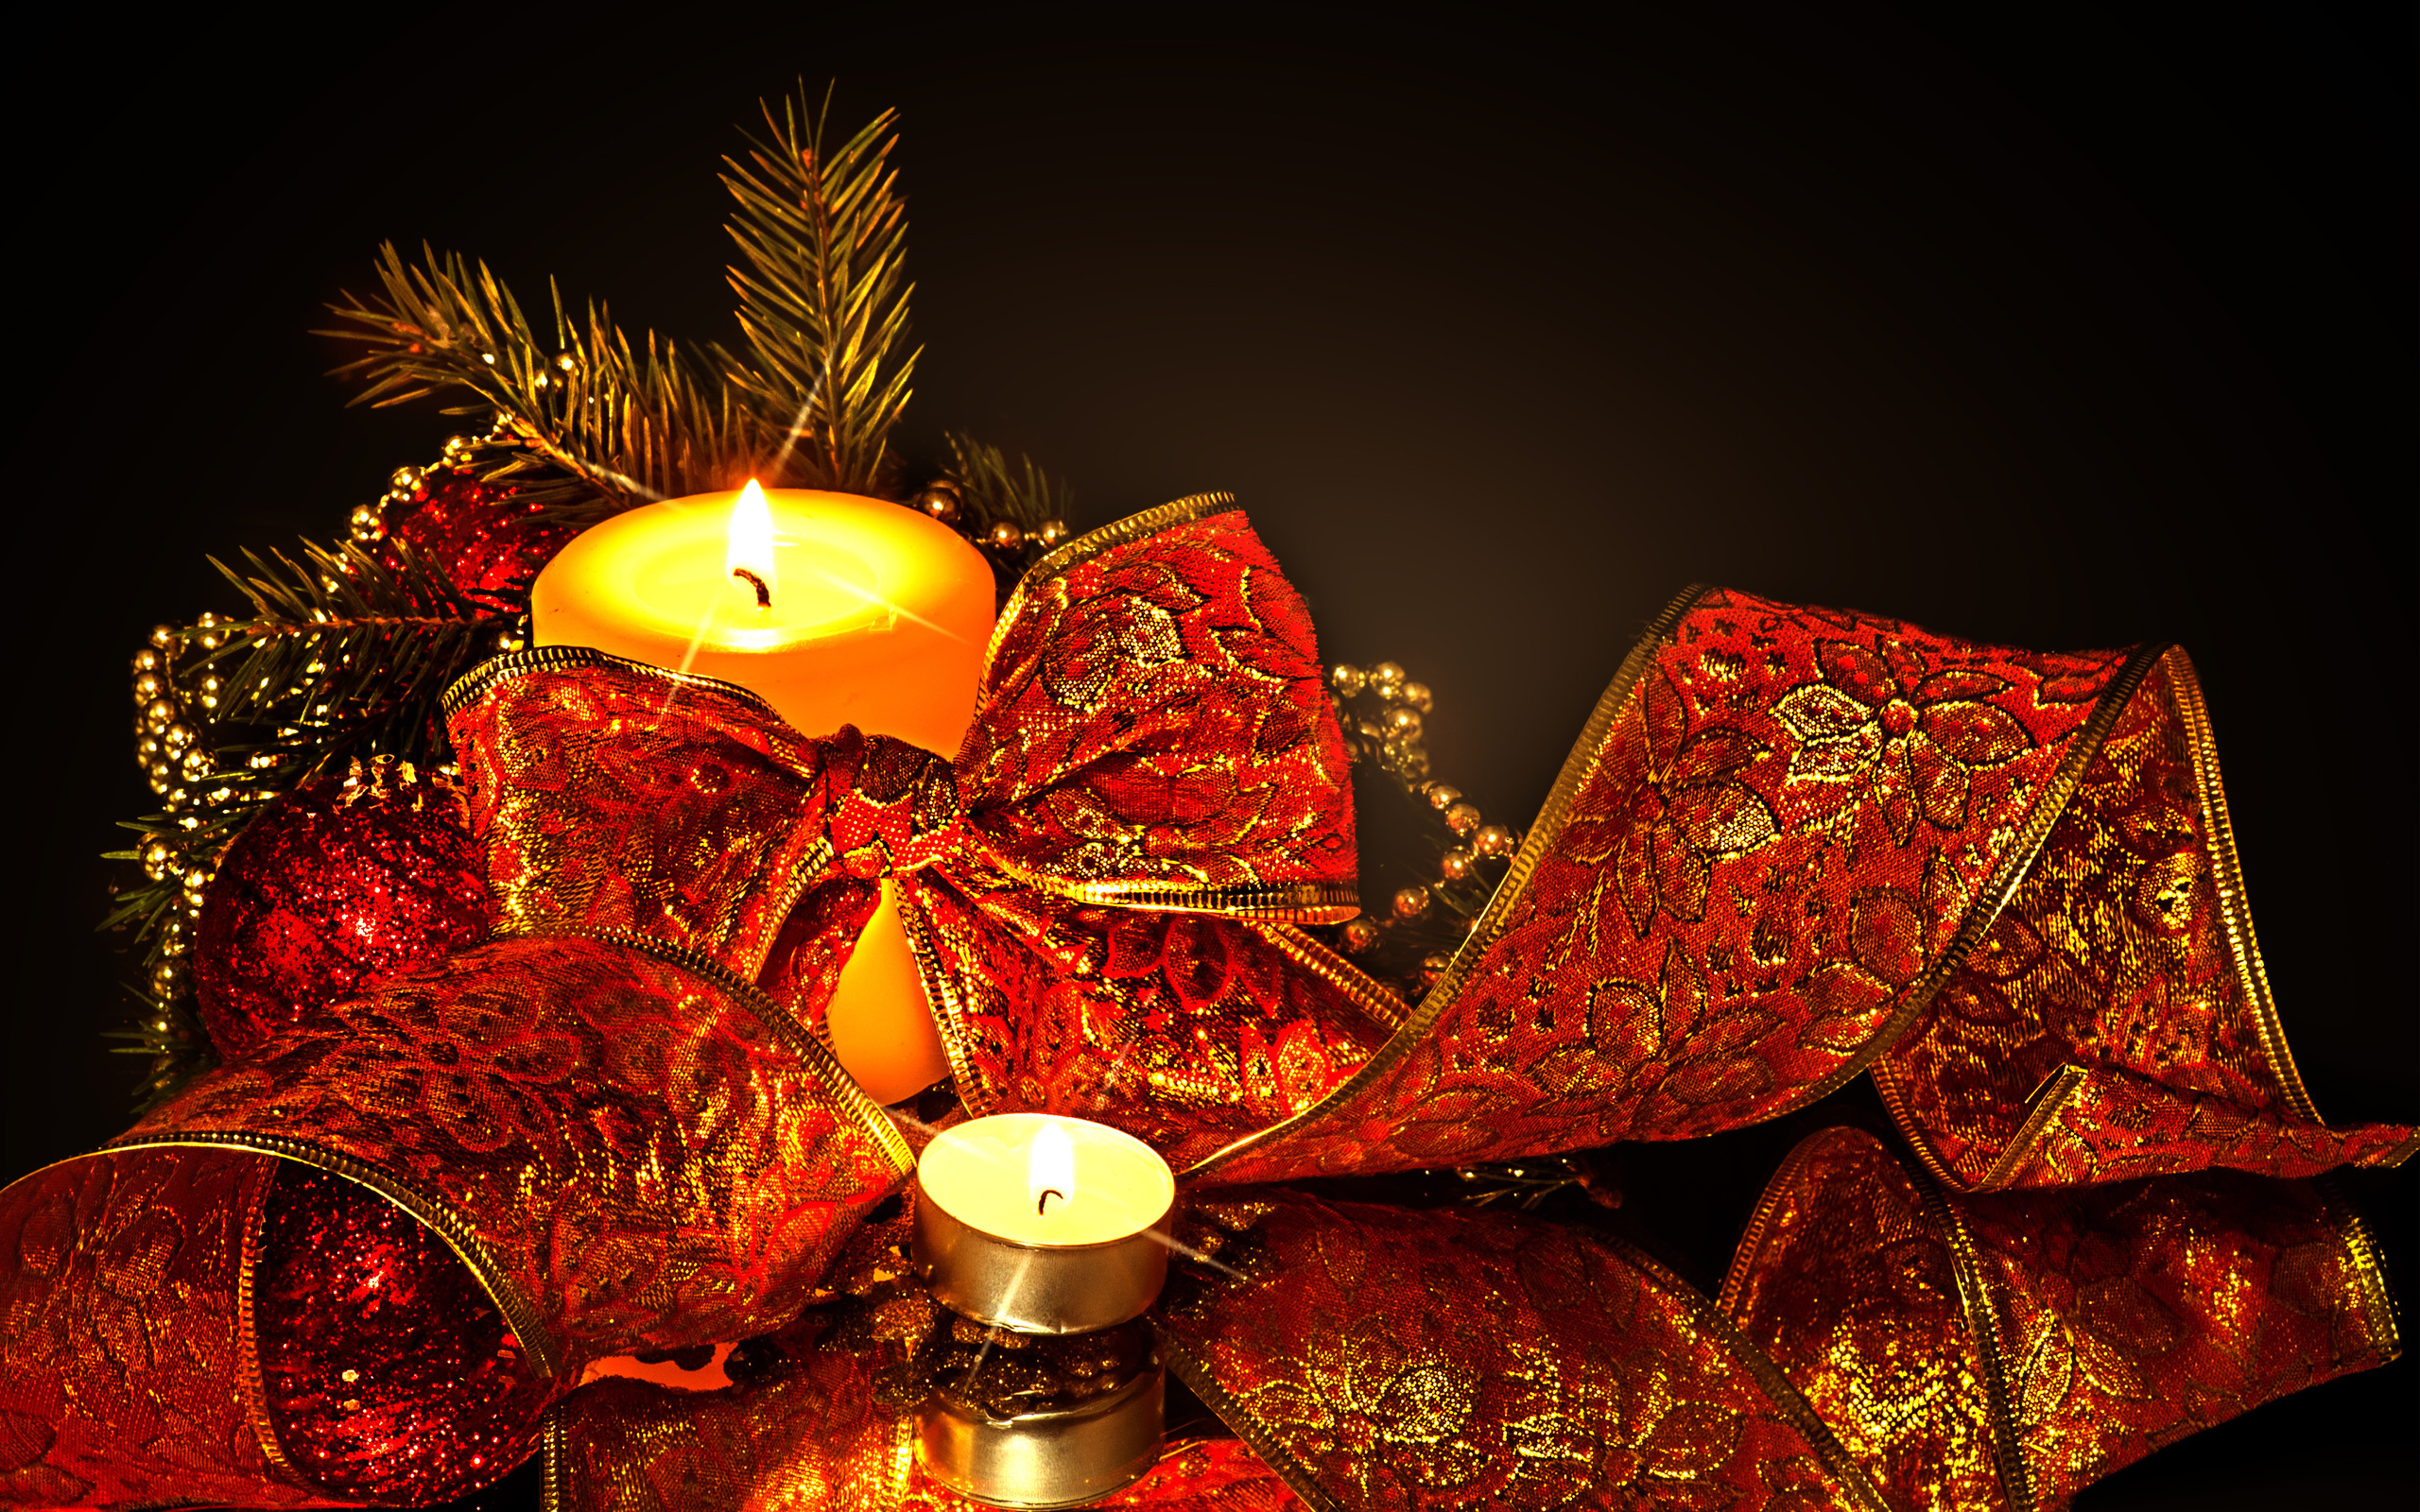 25280 download wallpaper Holidays, Background, New Year, Christmas, Xmas screensavers and pictures for free